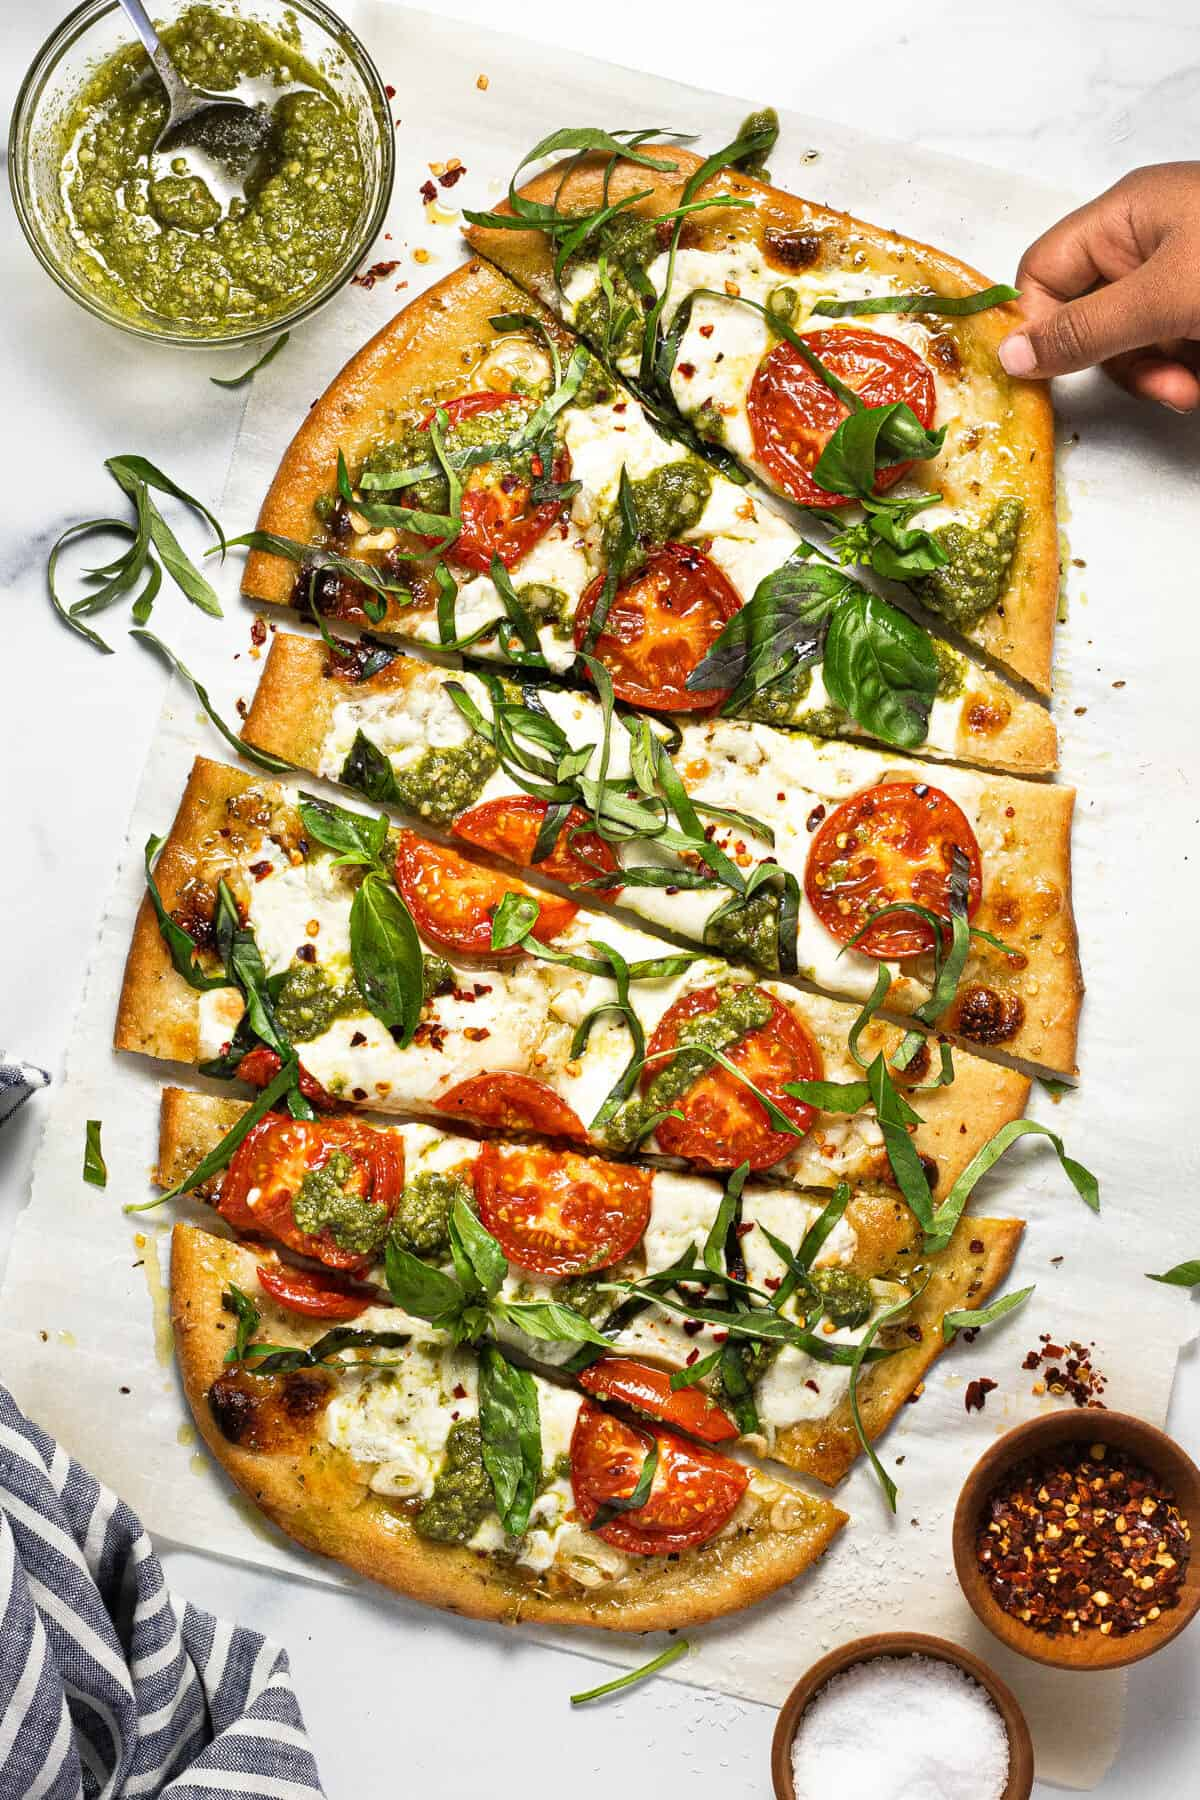 Small hand reaching for a slice of margherita flatbread pizza garnished with basil